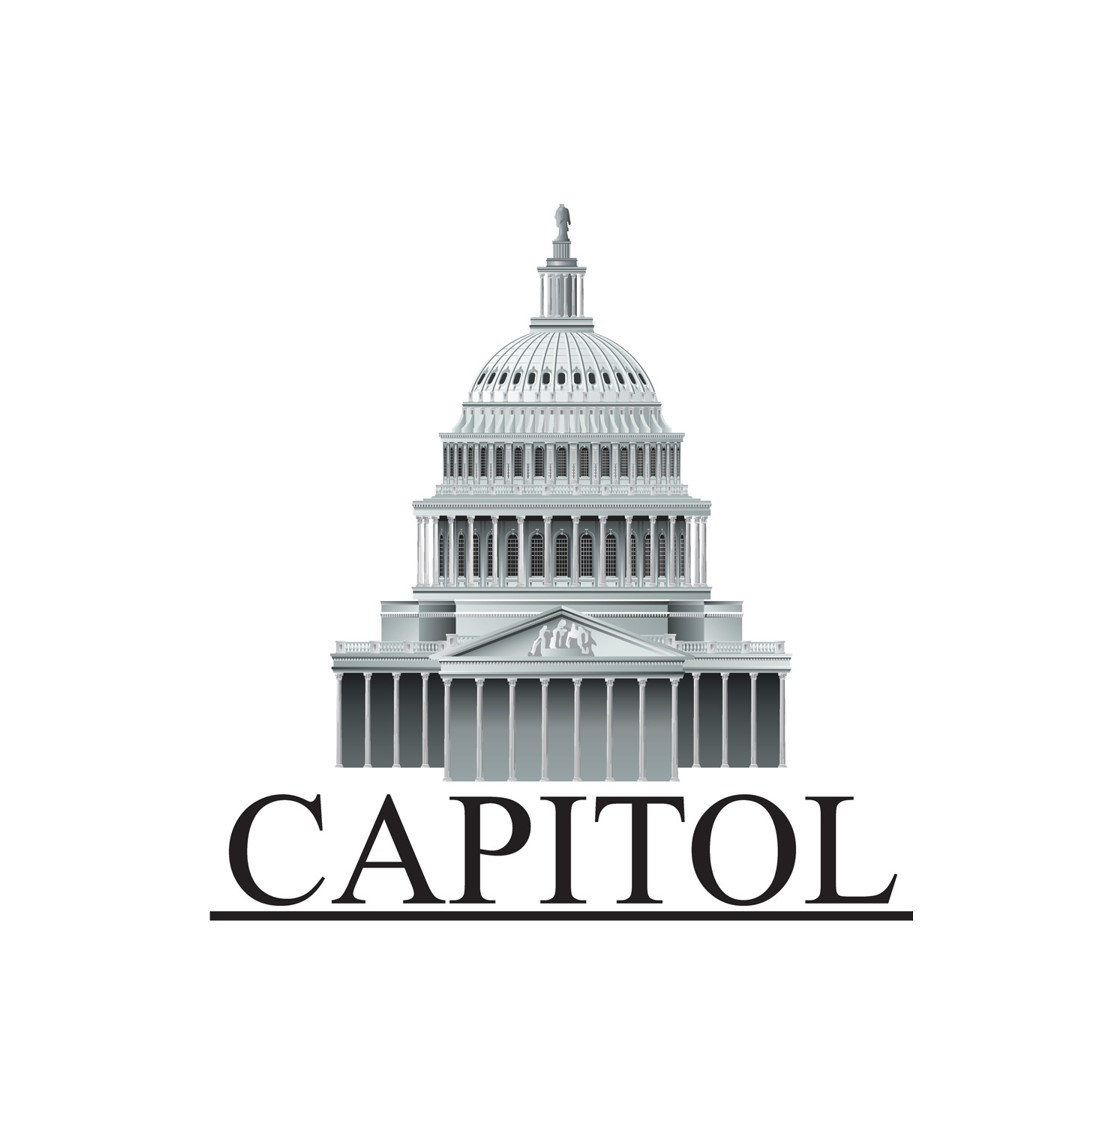 "<p><span style=""font-weight: bold;"">Capitol preferred insurance</span></p>"